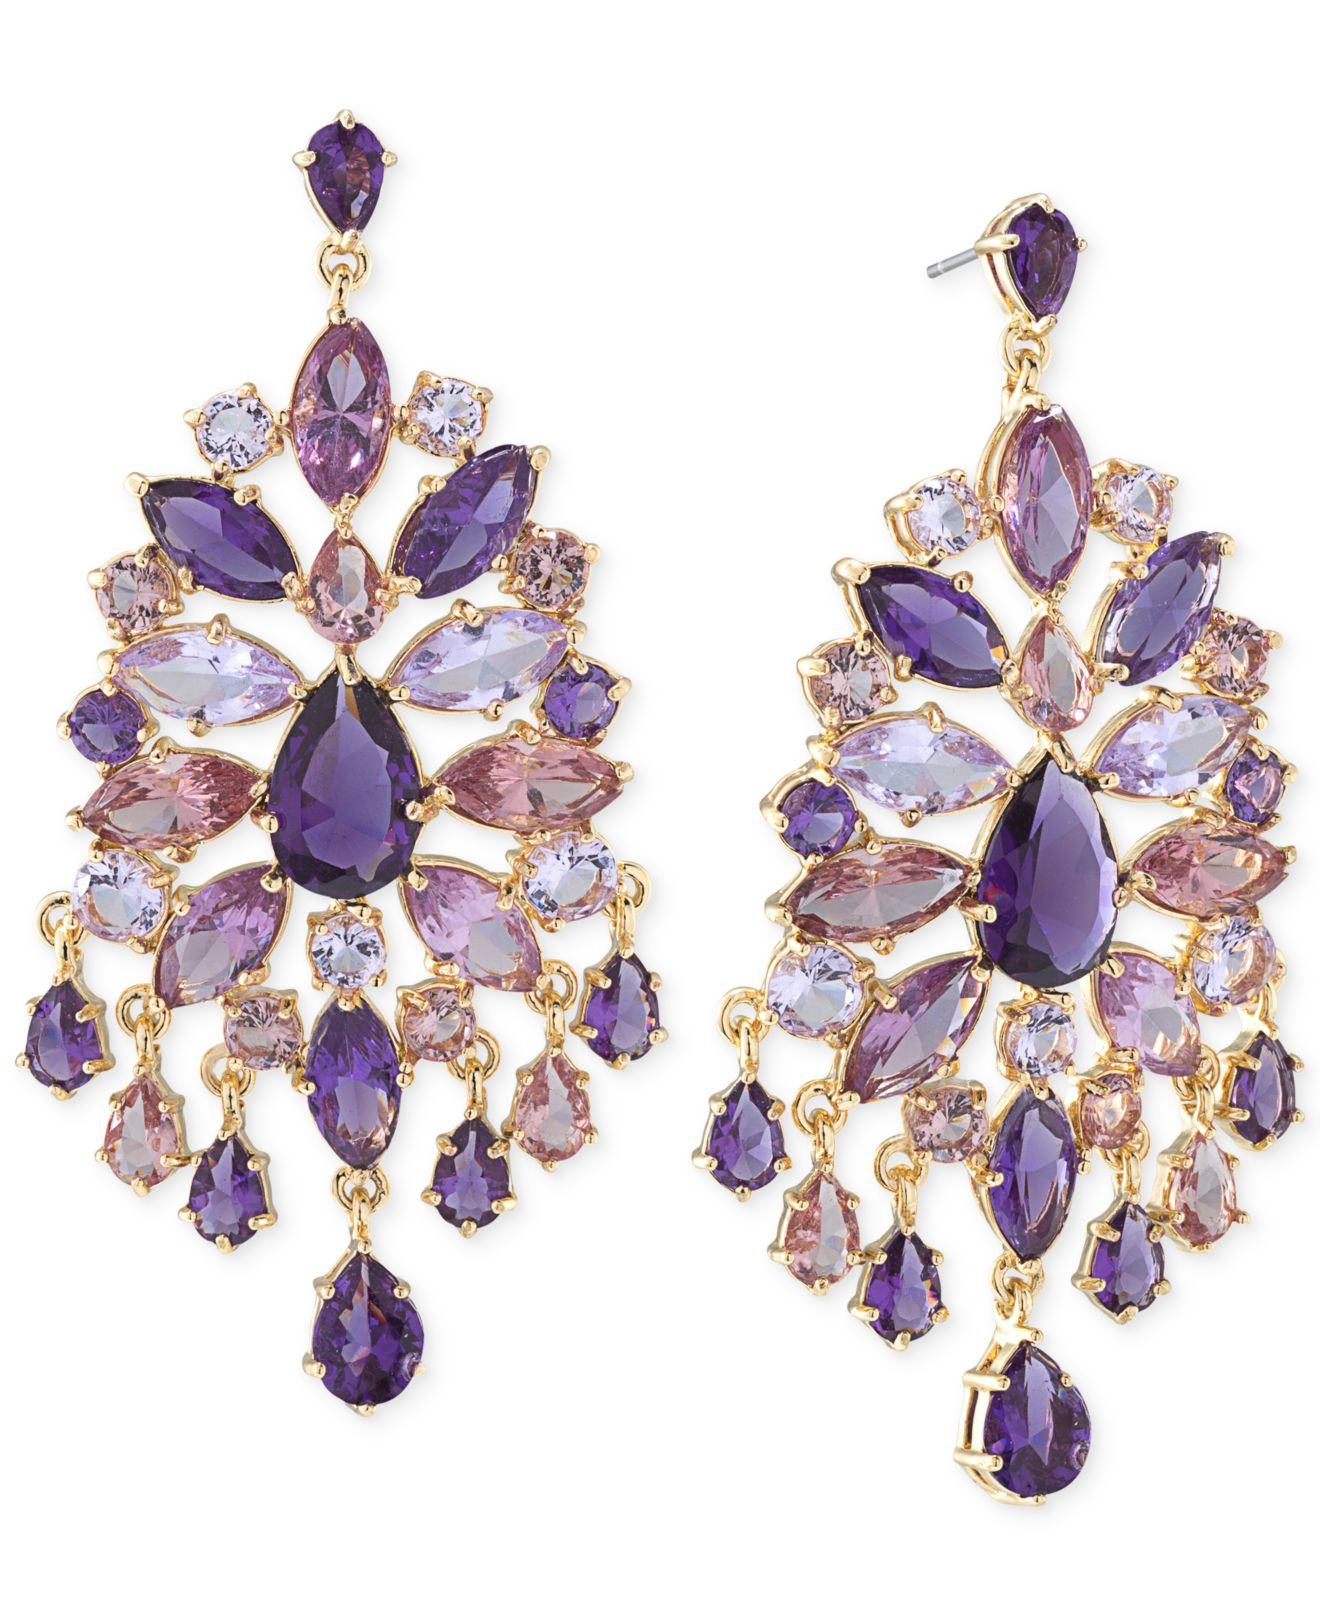 products earrings store and post gold filled watches brand taylor online lux storemeister from lord find jewelry department carolee at